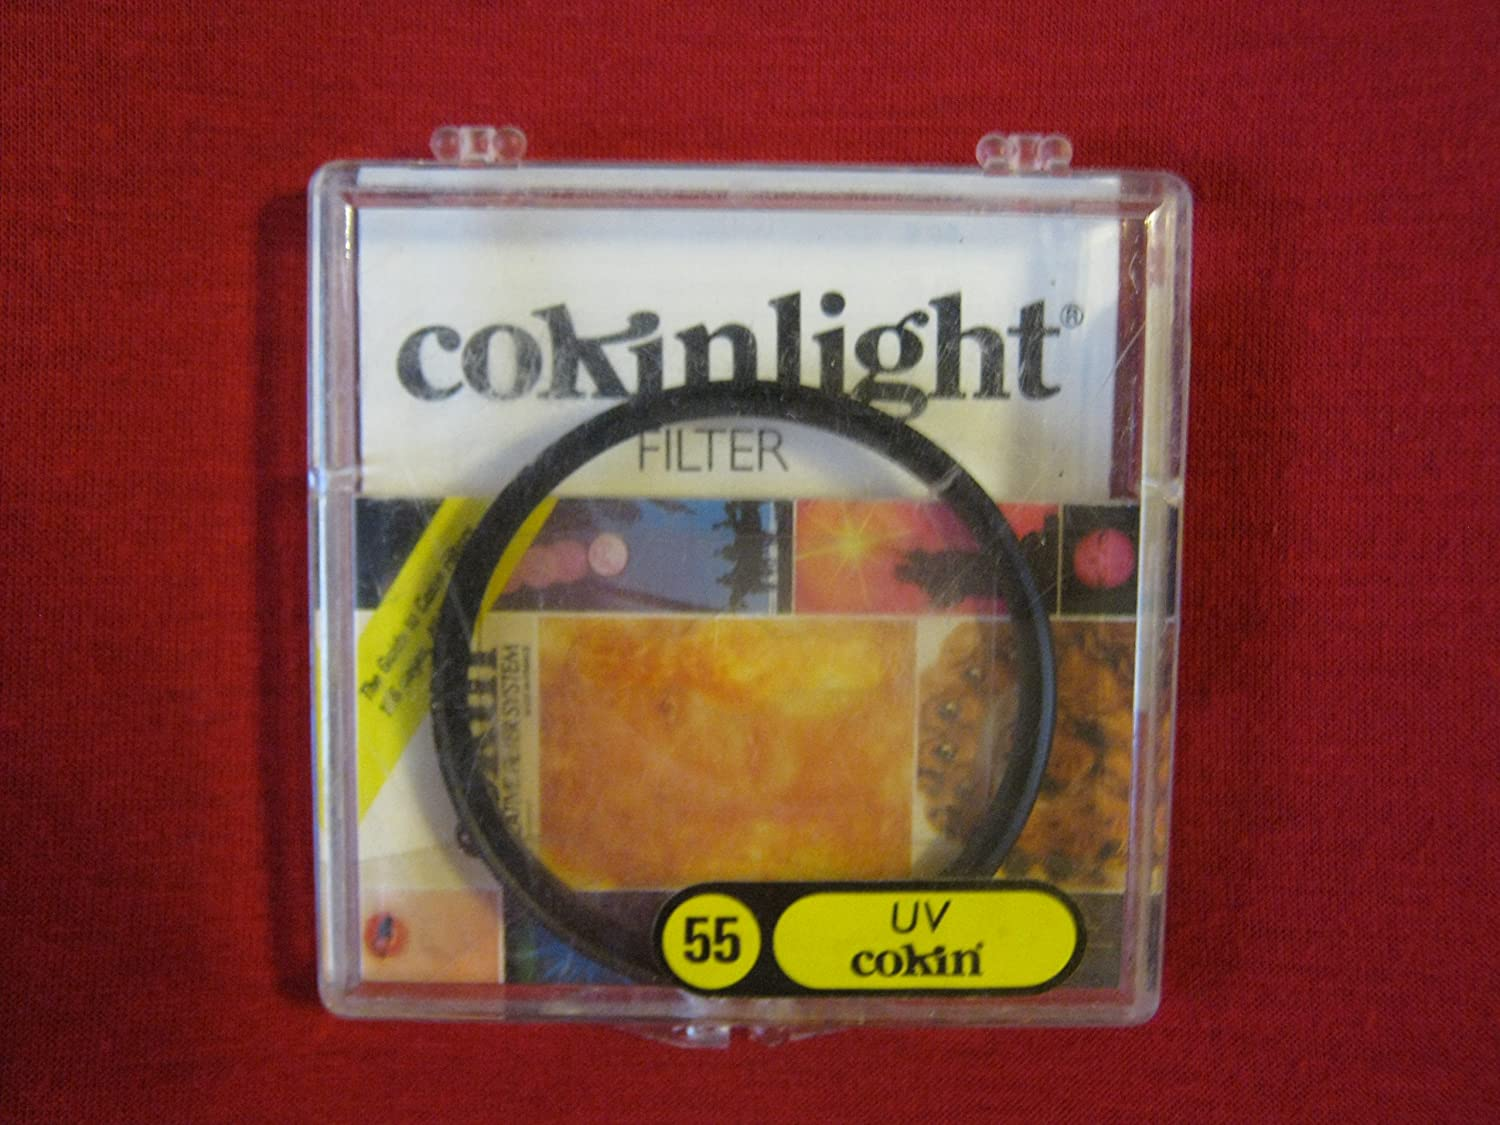 LU 055 Cokin Creative Filter System; CokinLight Round Filters; UV 55